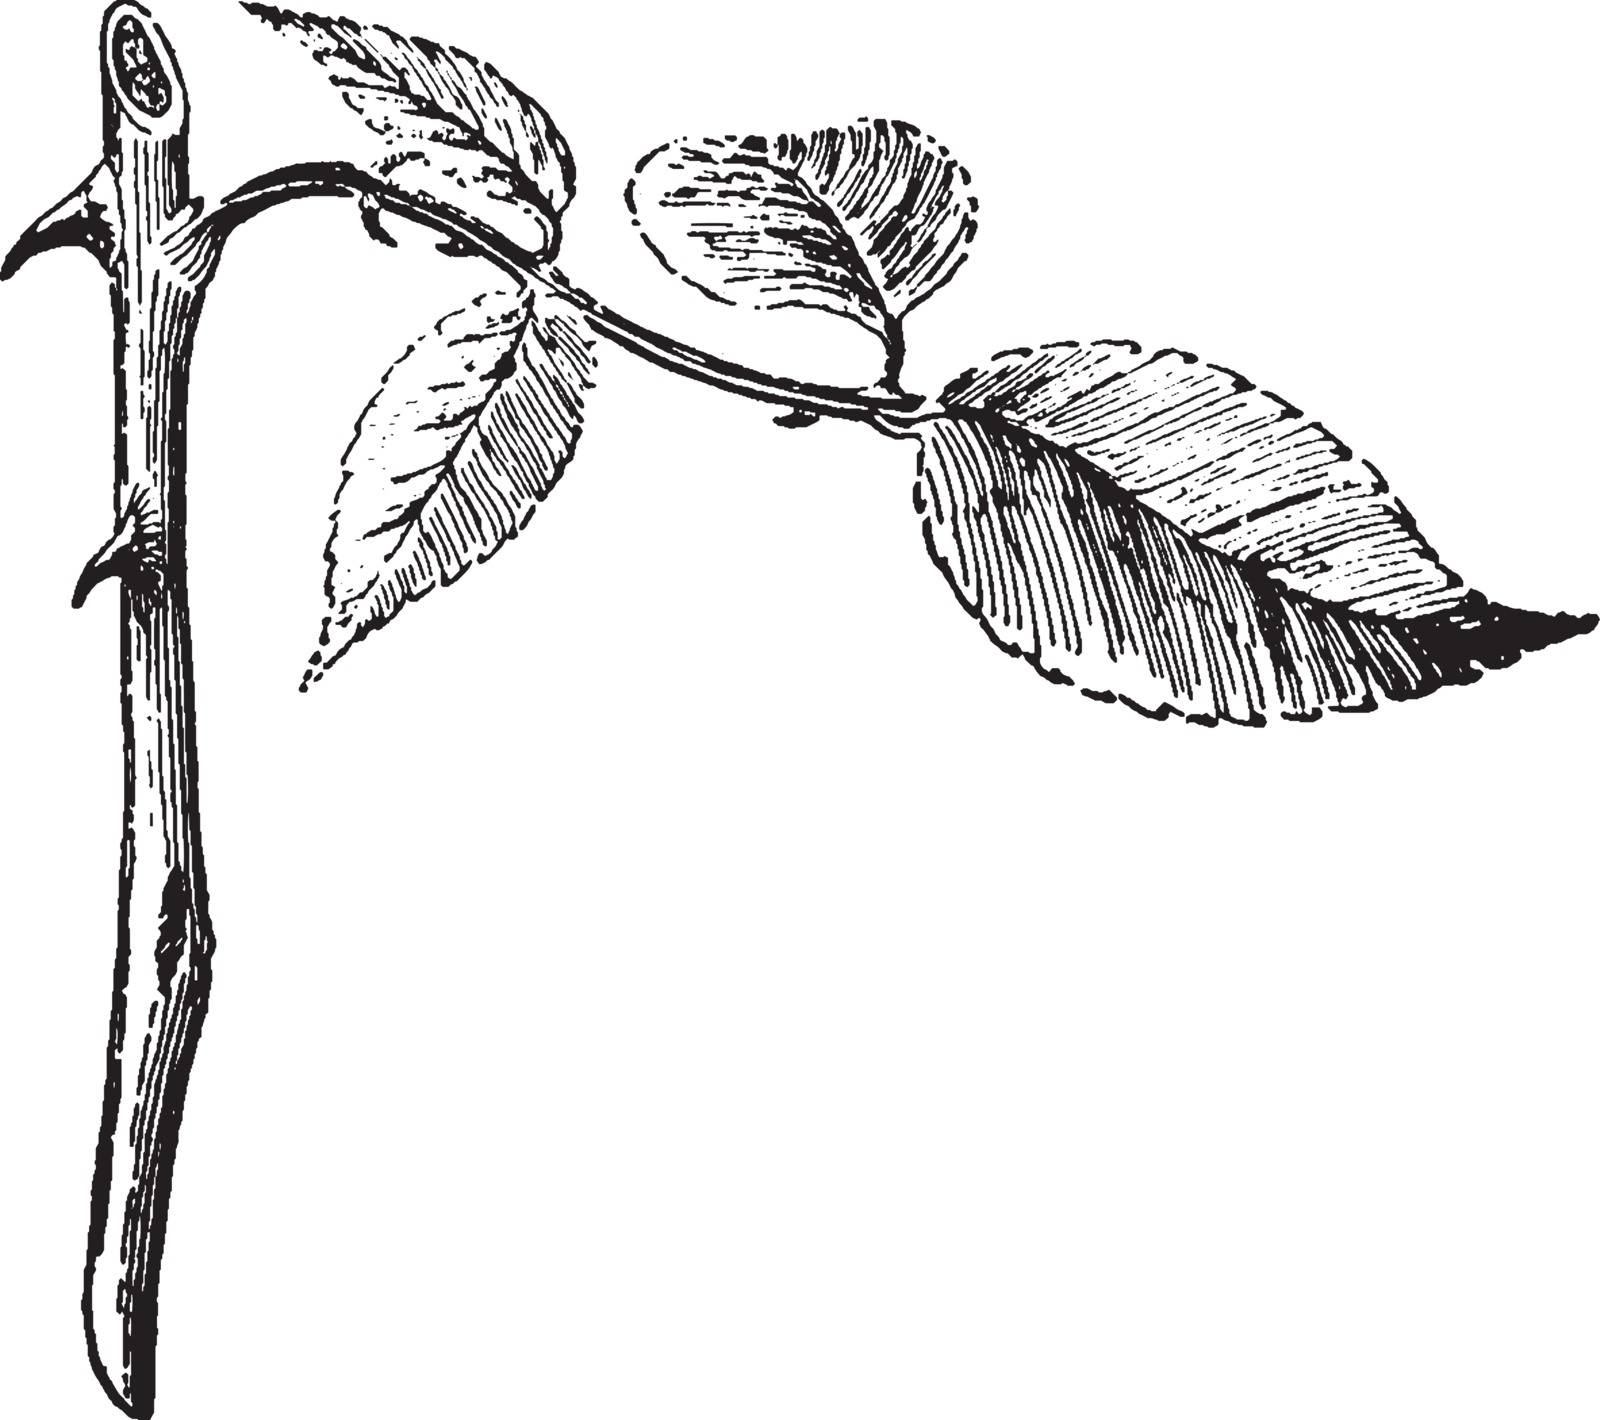 In this picture shows a stems. The stems are thin and rounded. The leaves are attached to stems. The thorn attached to stem. The thorns are very sharp, vintage line drawing or engraving illustration.